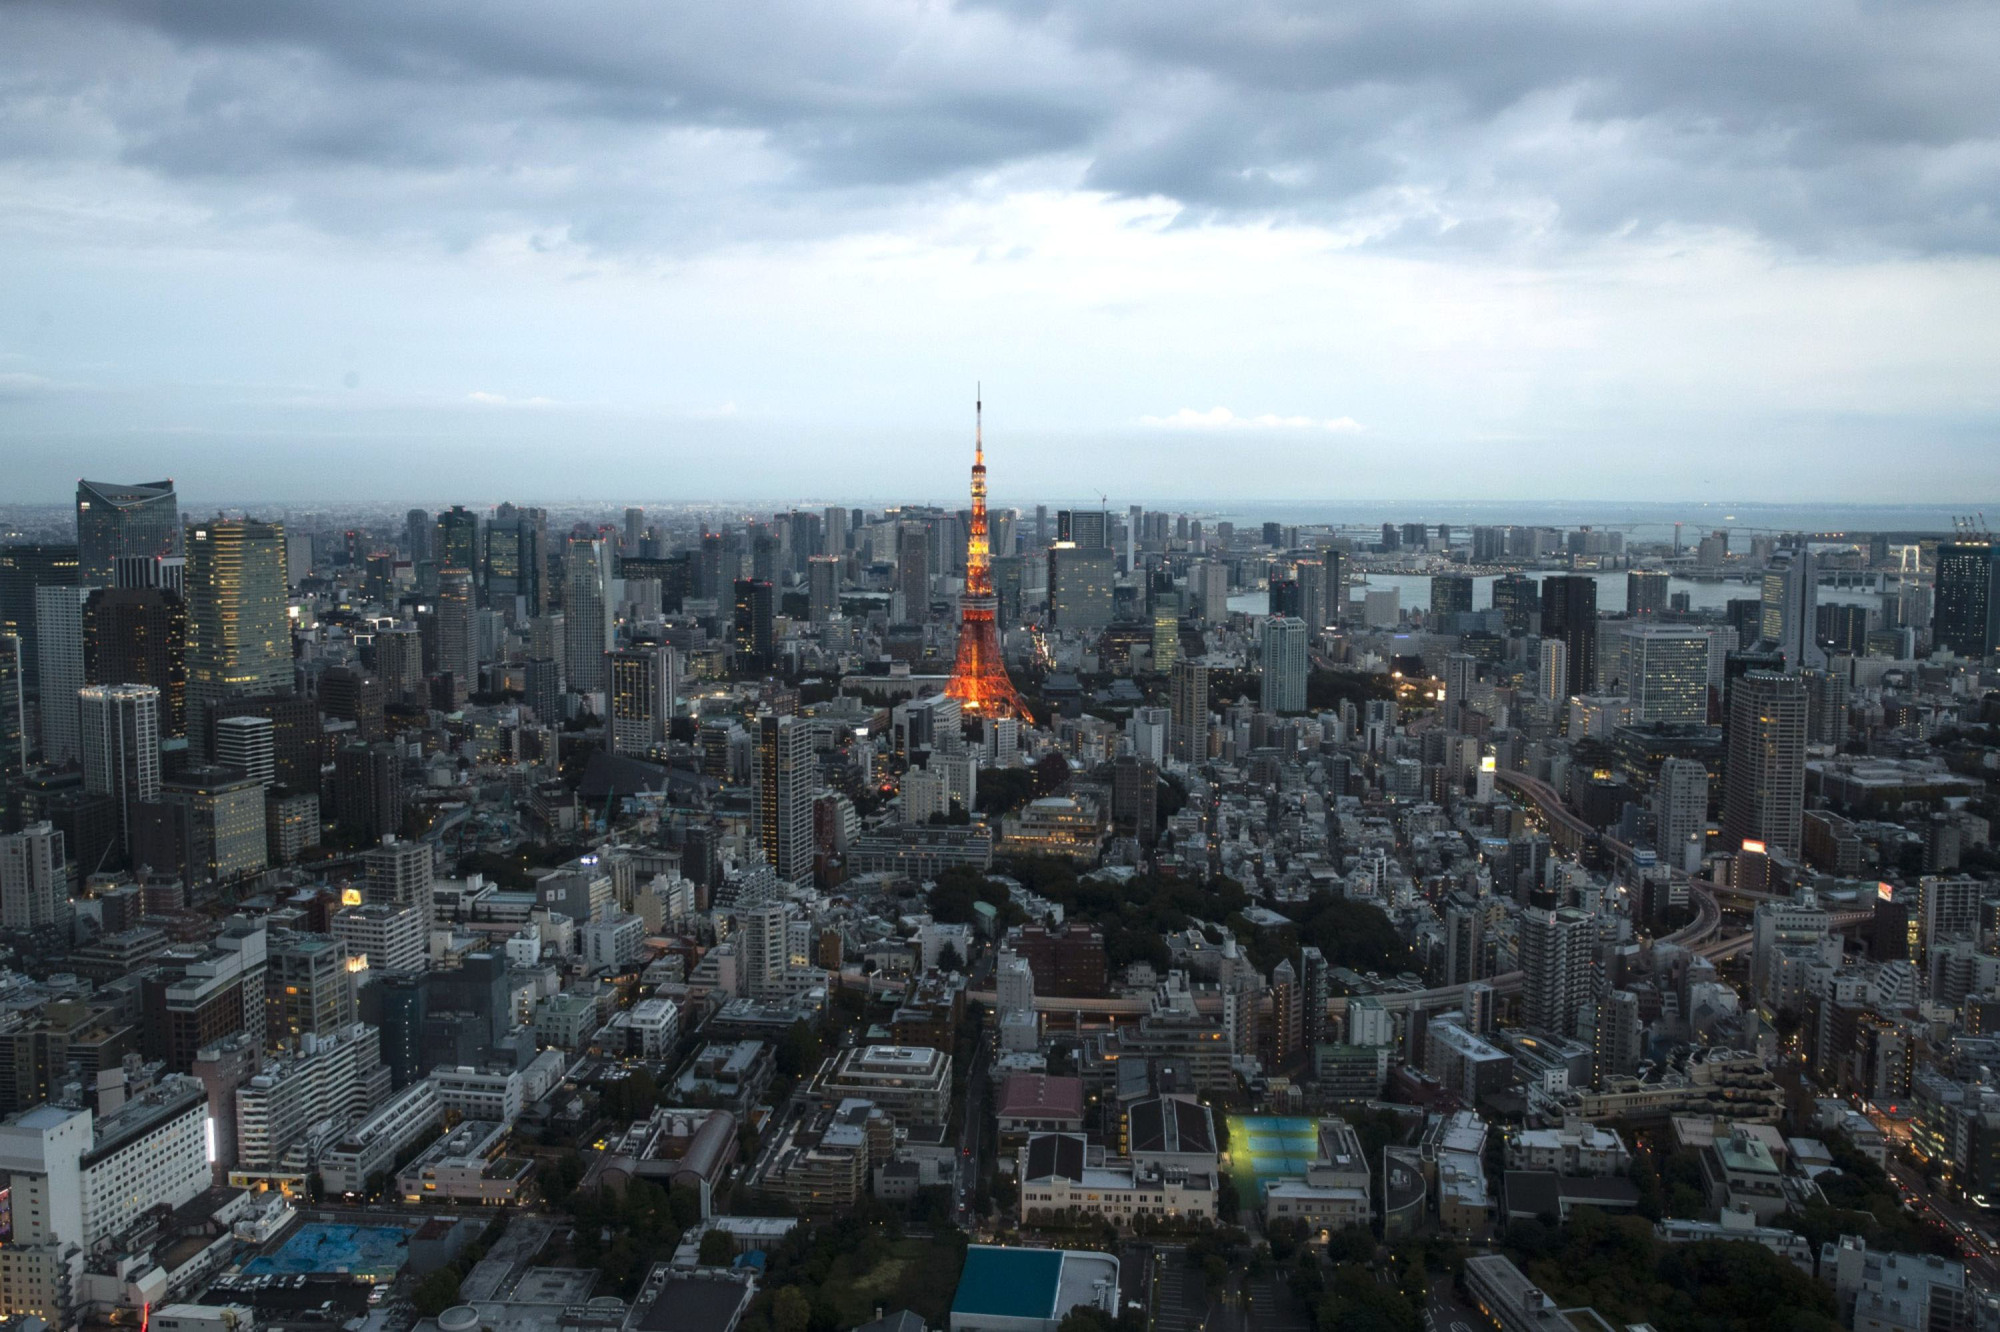 Thanks to the Japanese custom of tearing down housing that's more than 30 years old, Tokyo has seen a lot more new construction than other big cities and offers great price variation among neighborhoods. | BLOOMBERG